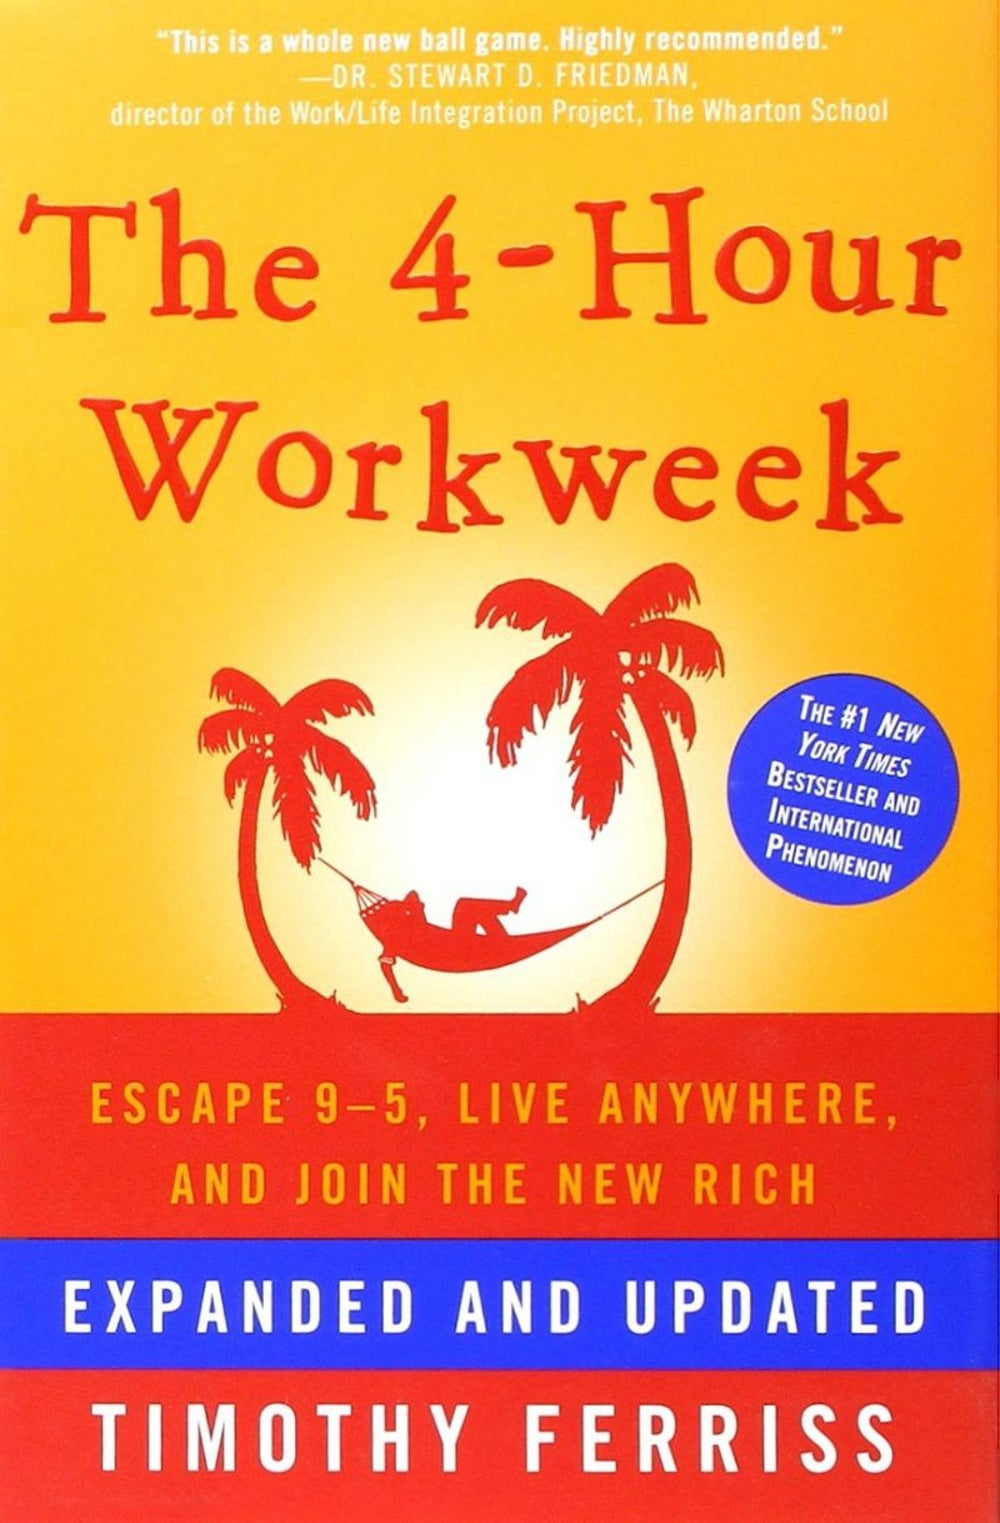 Tim Ferriss's 'The 4-Hour Workweek'